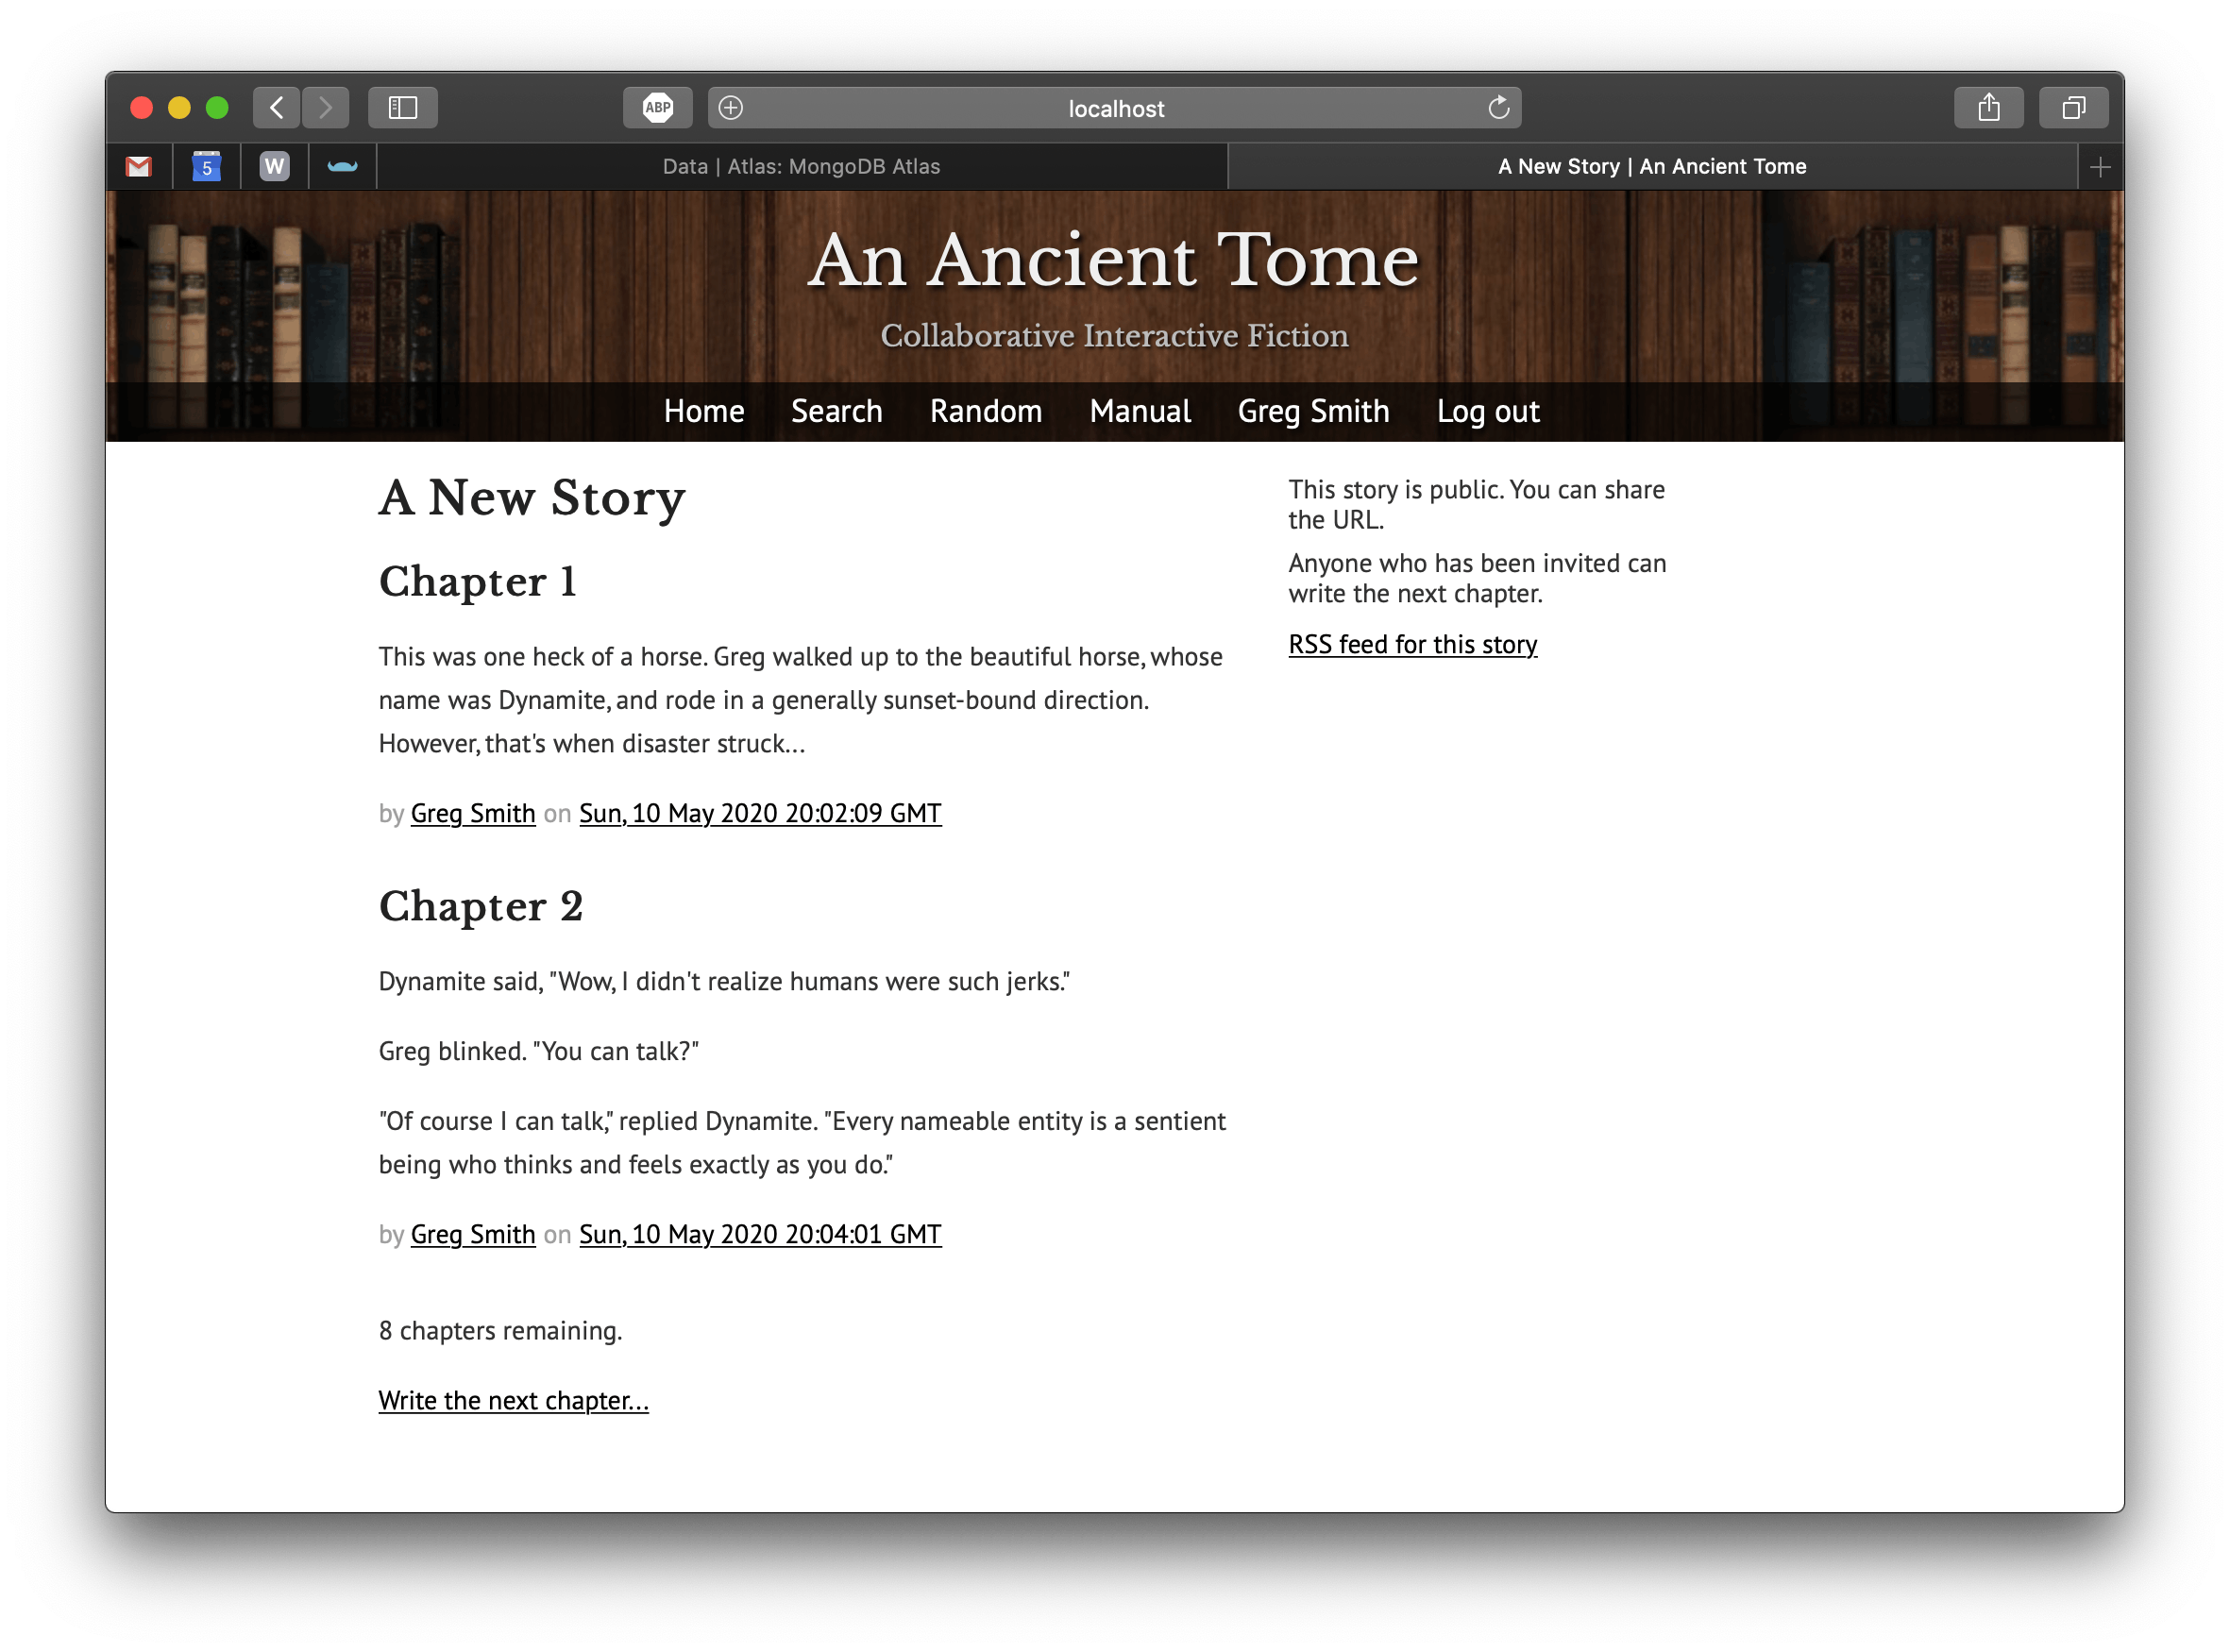 Story Page